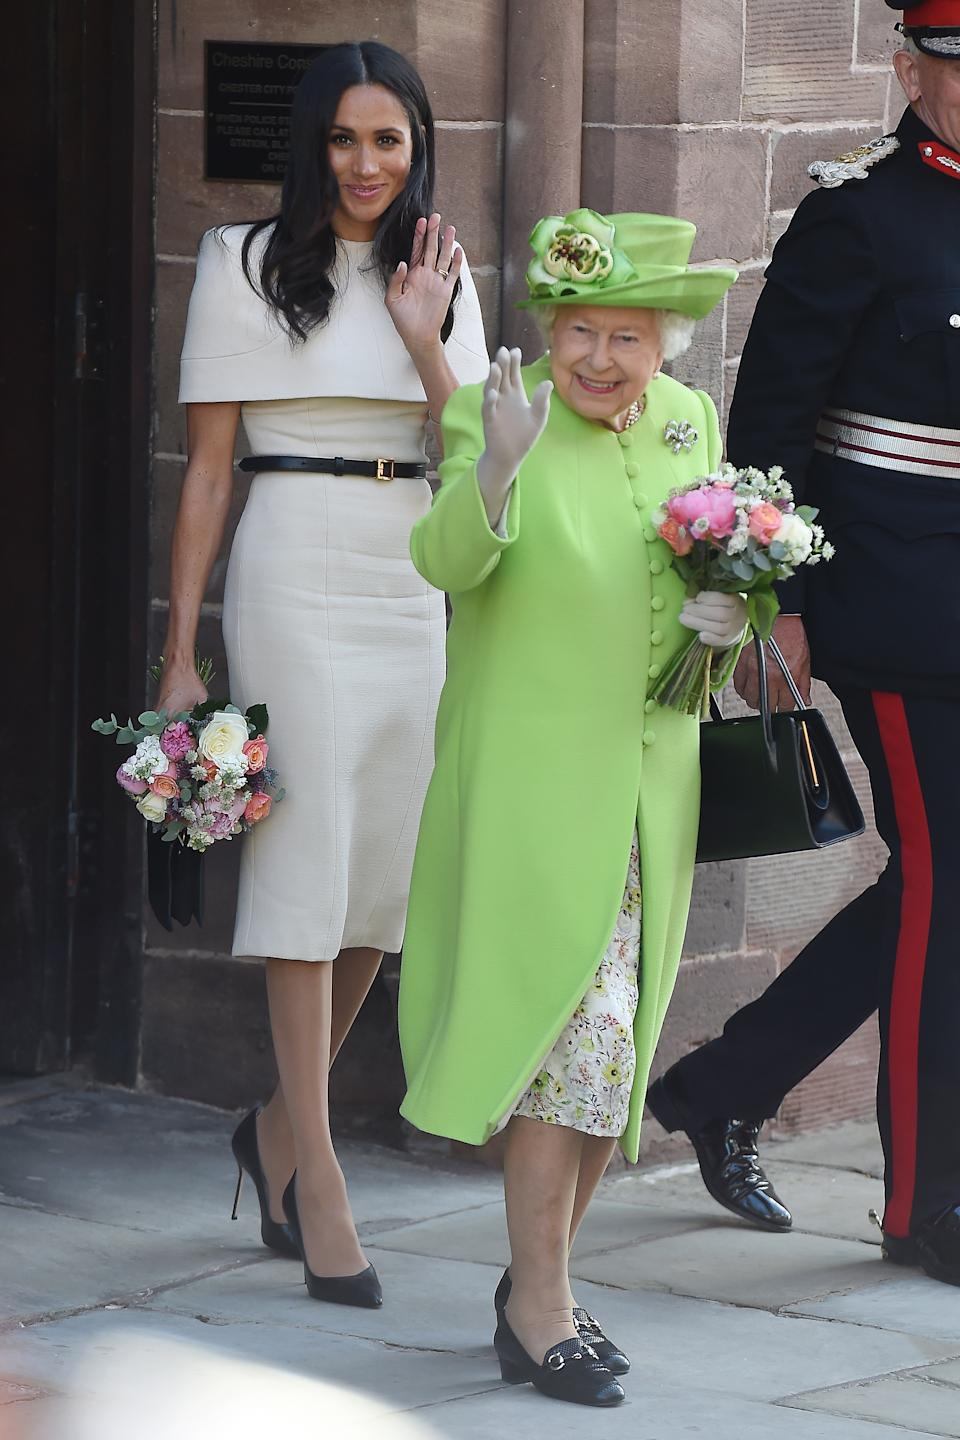 The Duchess of Sussex wore a sleek white dress for her first official appearance alongside Queen Elizabeth just one month after the royal wedding. It was made by her wedding dress designer, Clare Waight Keller. (Photo: Getty Images)